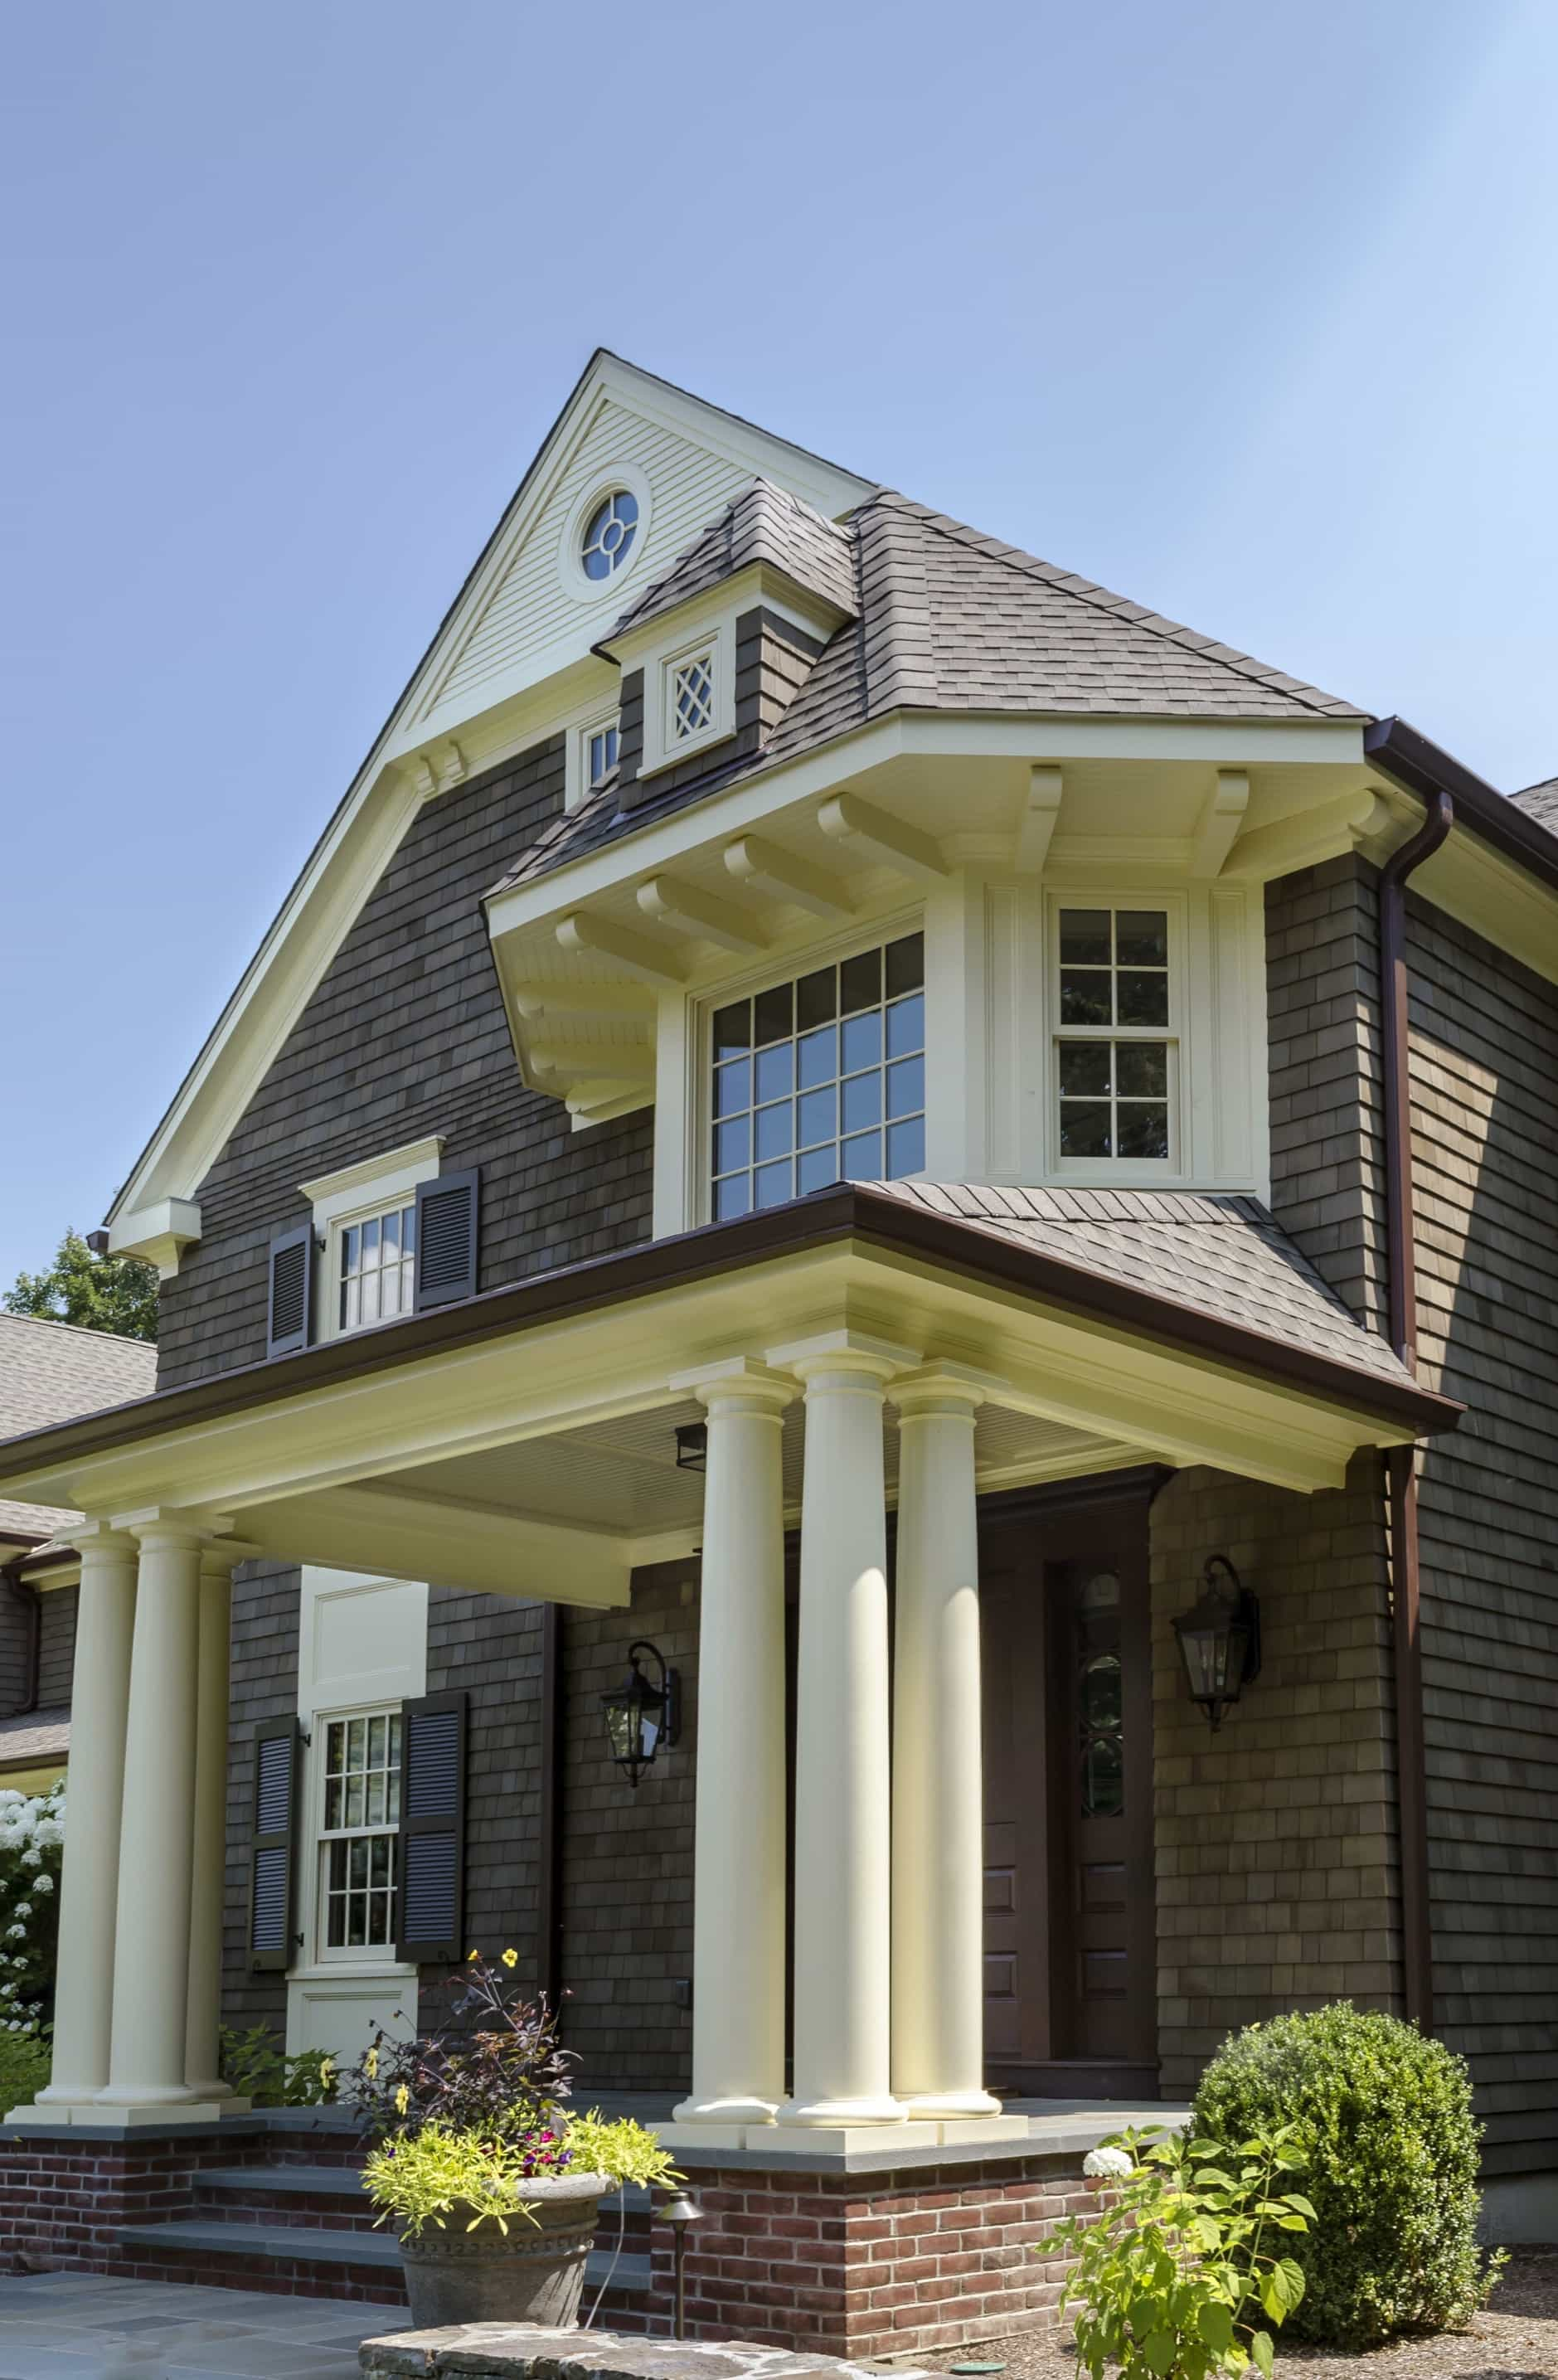 Featured Image of Front Porch With Large Pillars Design At Colonial Home